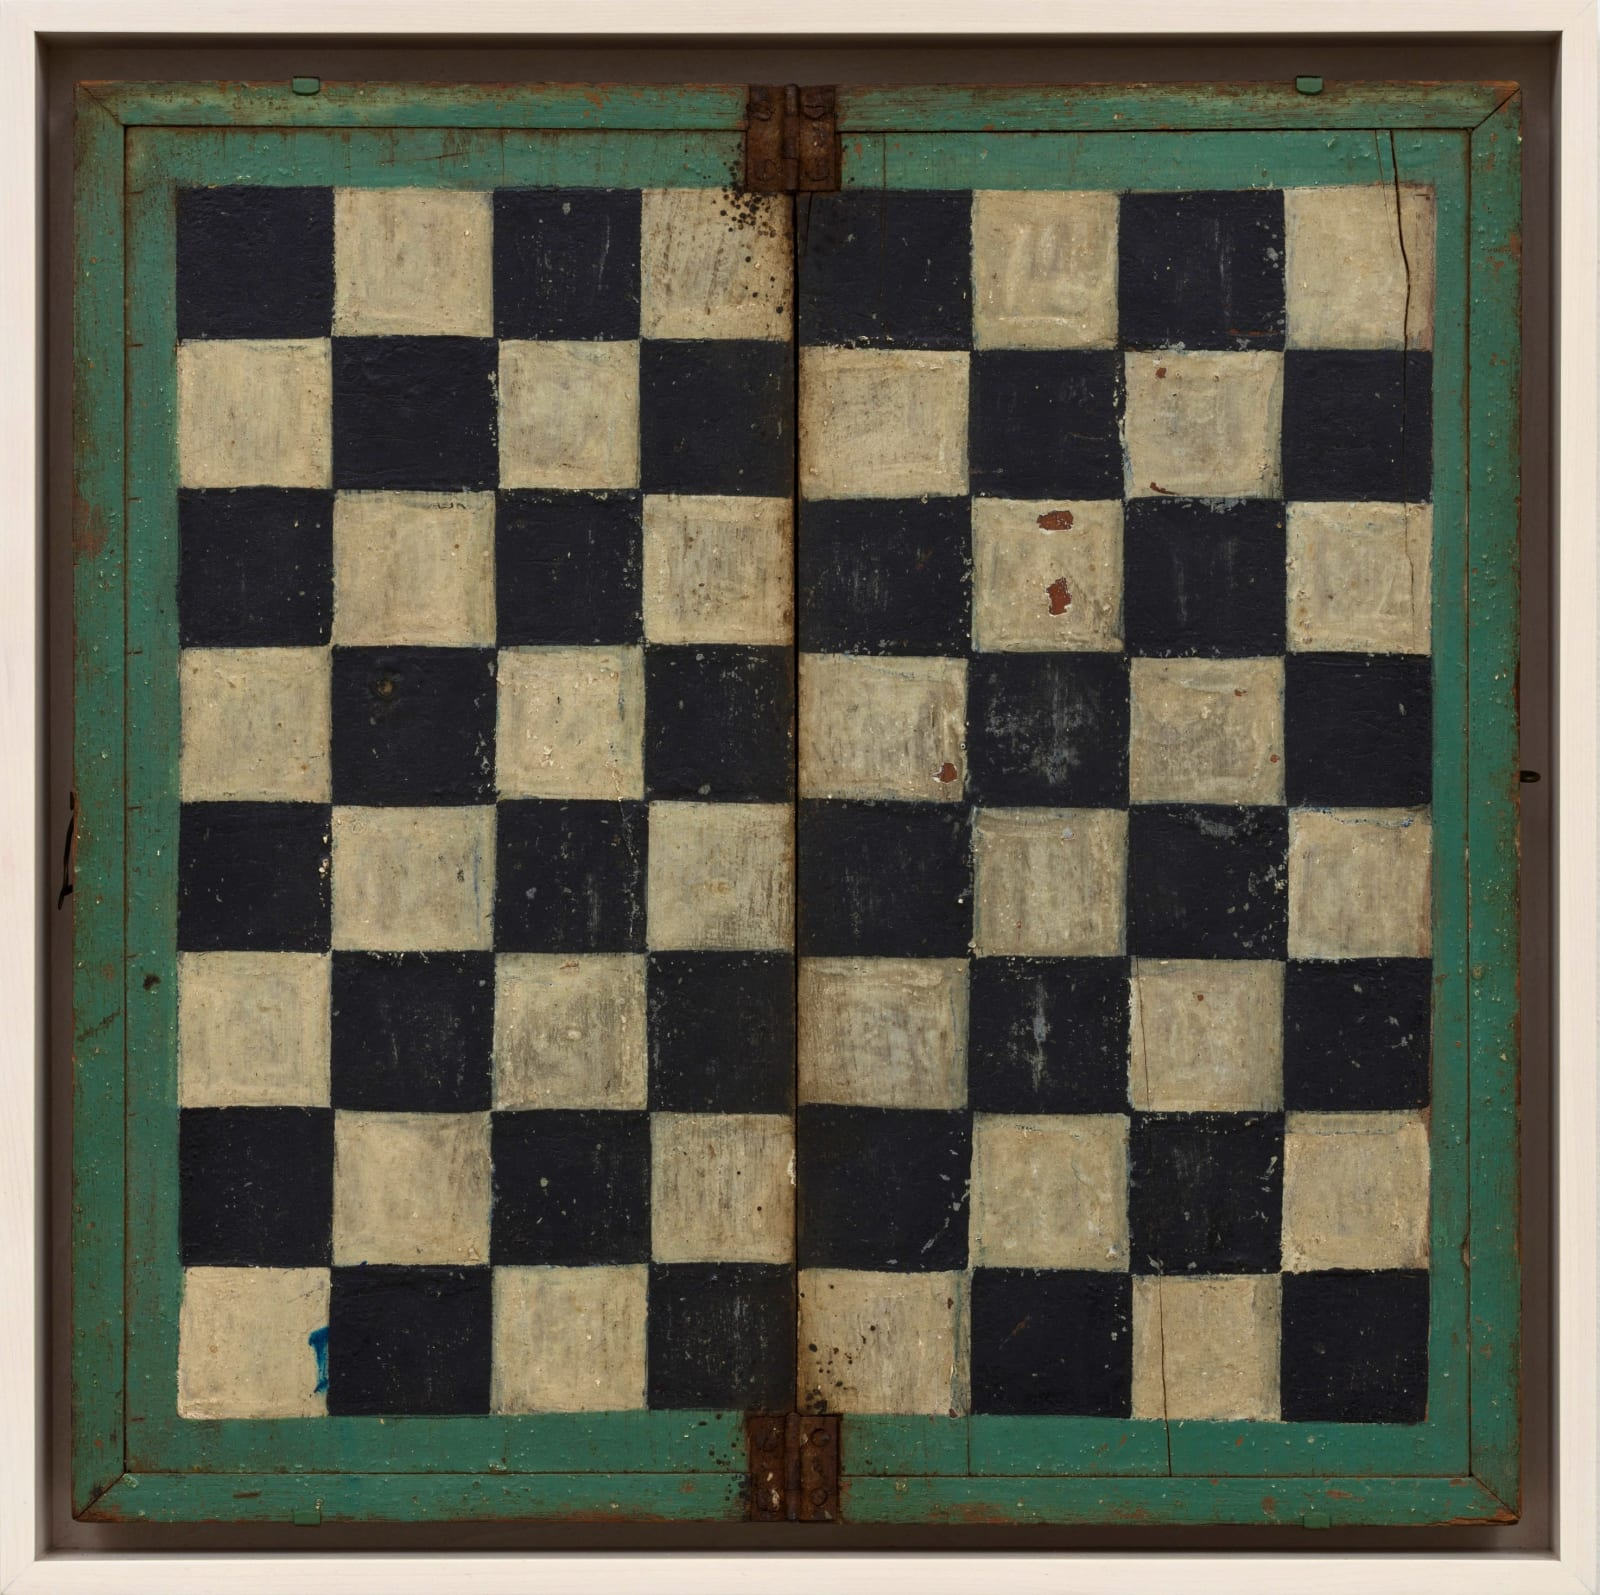 FOLDING CHECKERS BOARD, LATE 19TH-EARLY 20TH CENTURY Oil enamel on wood panel 14 x 14 in. 35.6 x 35.6 cm. (AU 259)